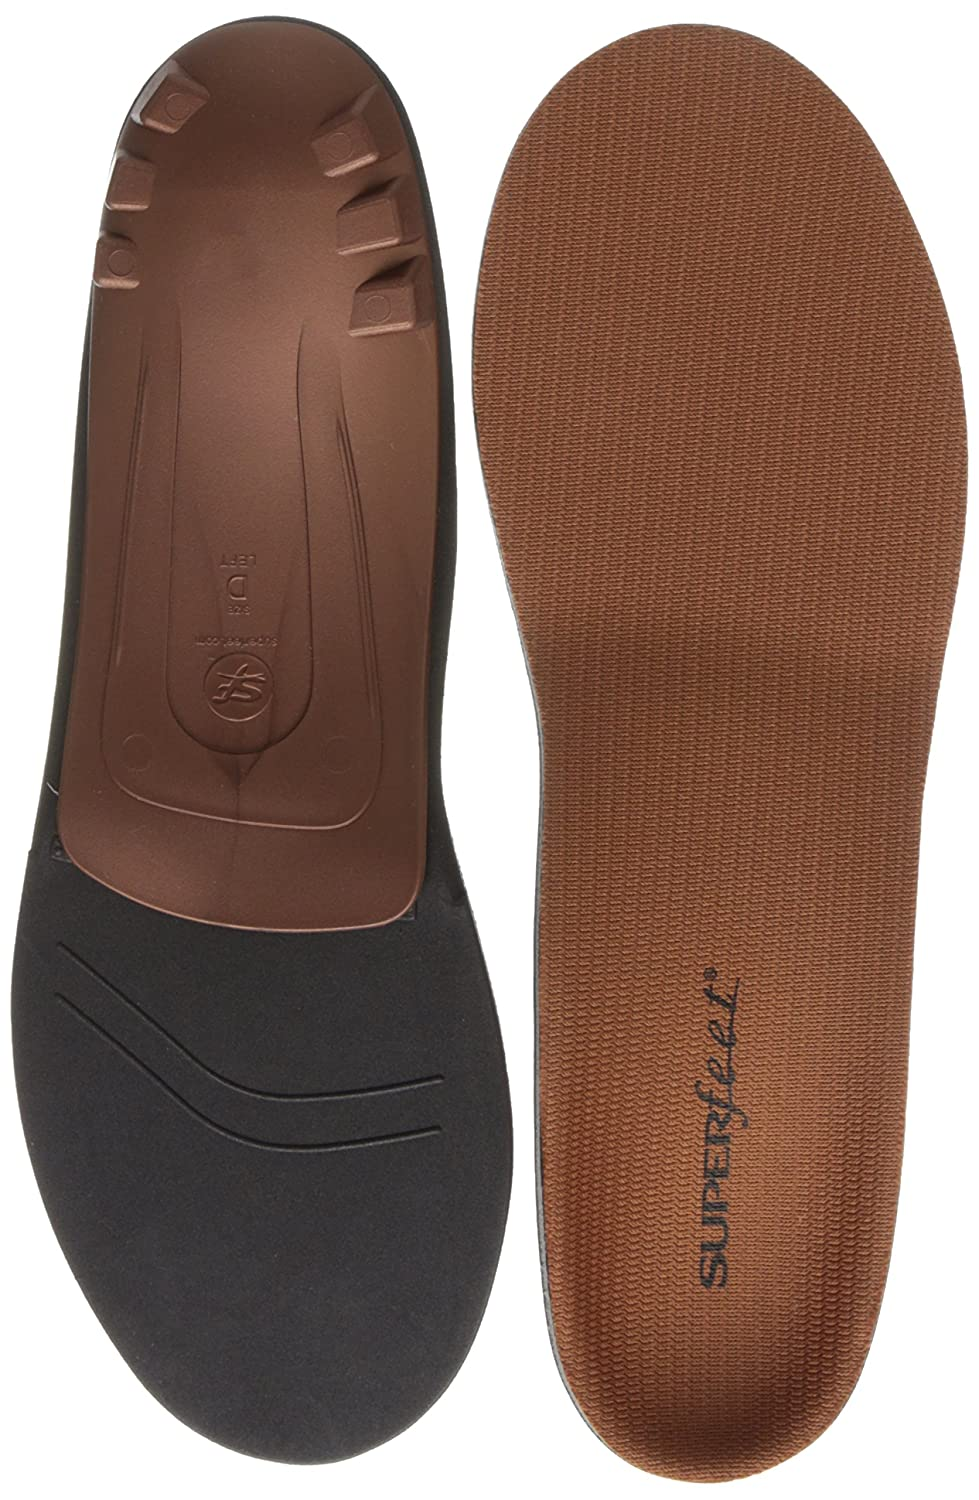 Superfeet COPPER personalized comfort insoles